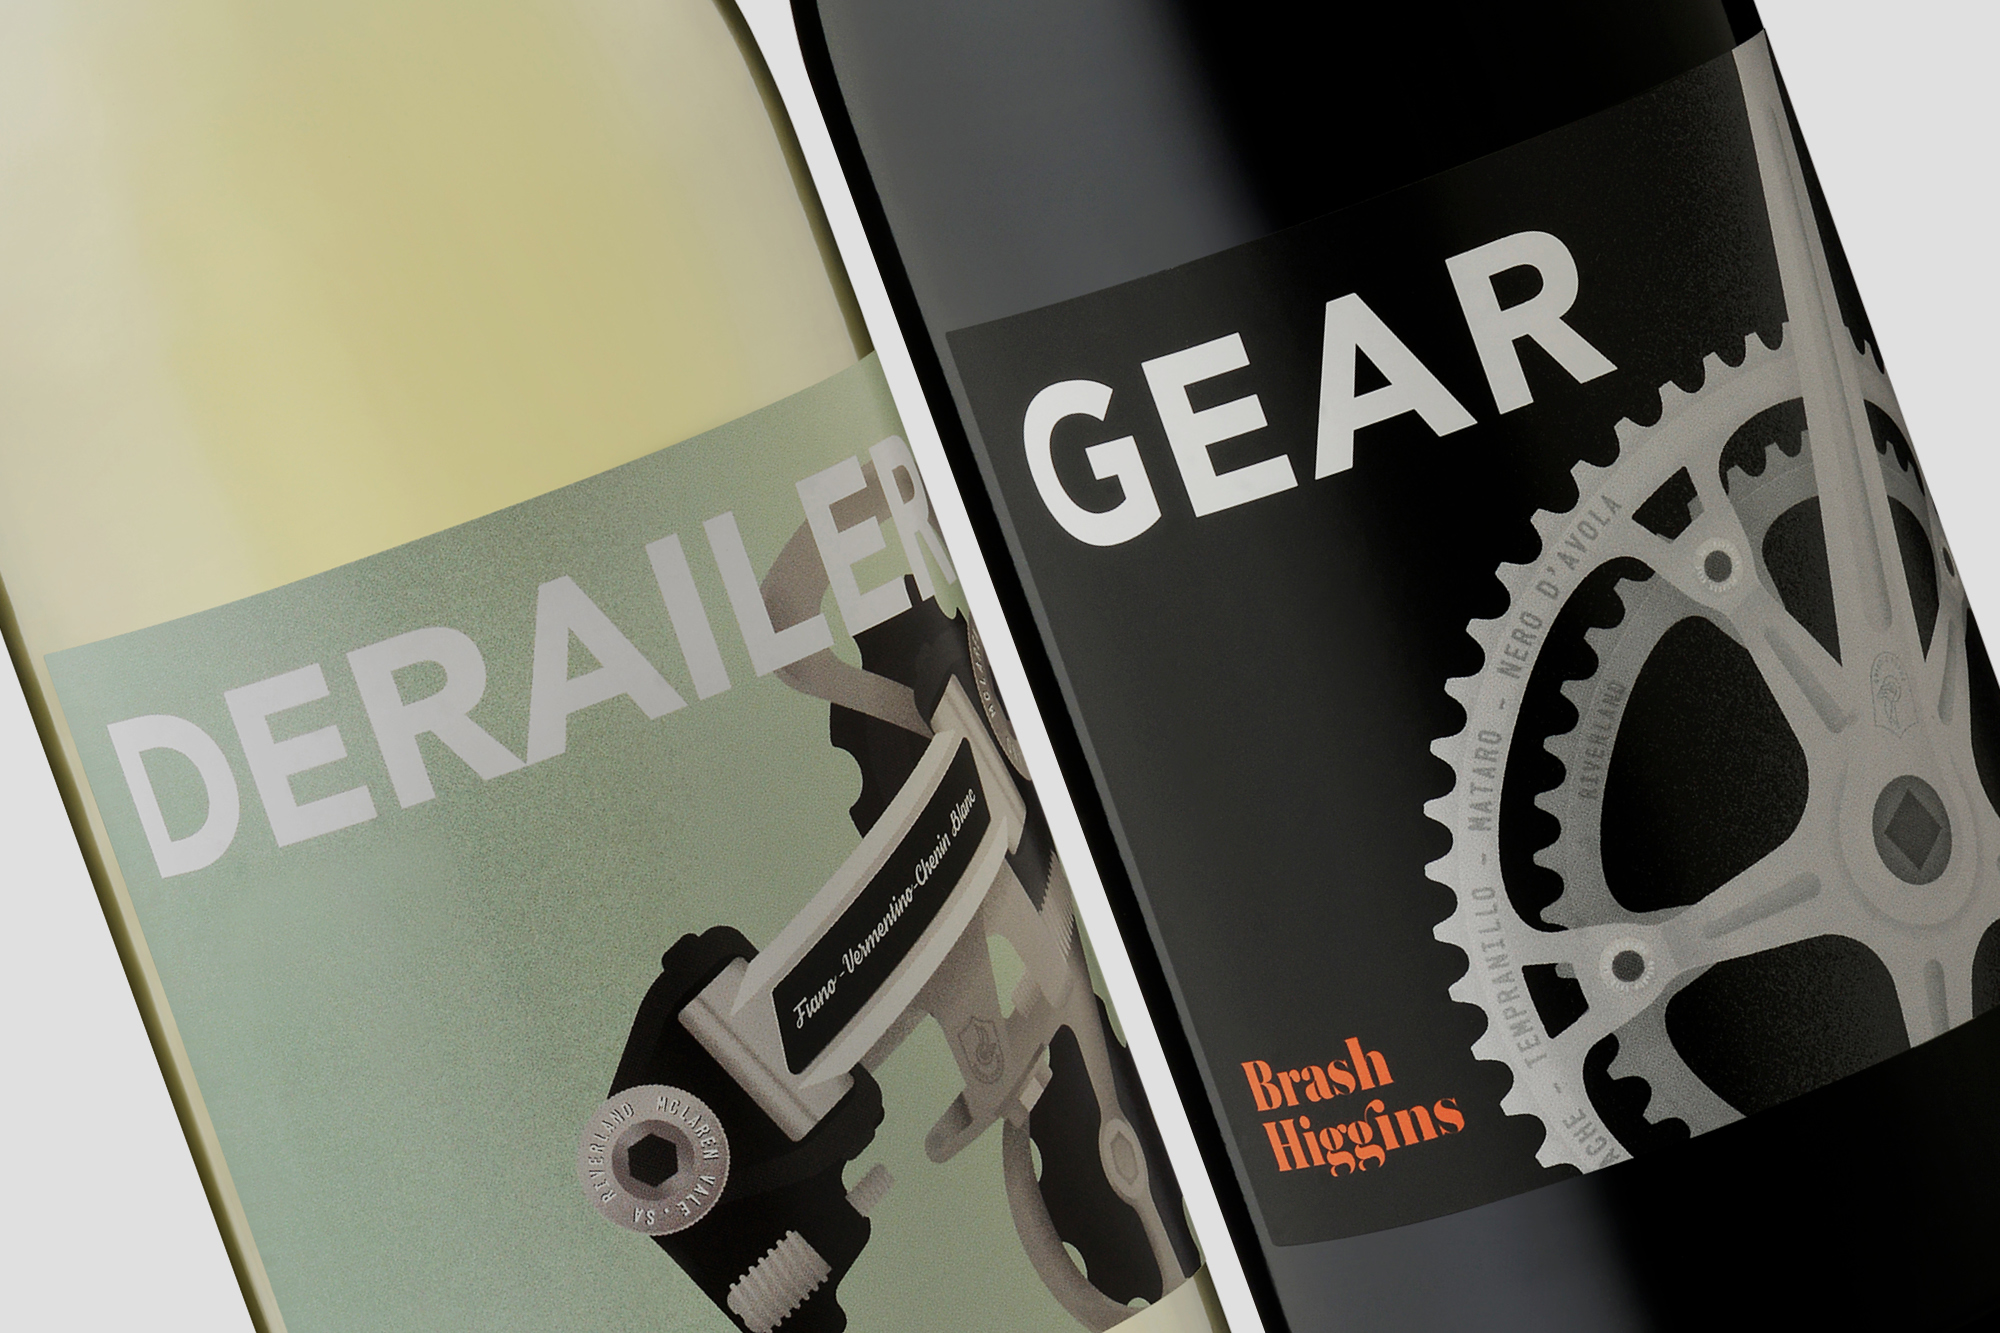 Brash Higgins wine labels for Gear and Derailer